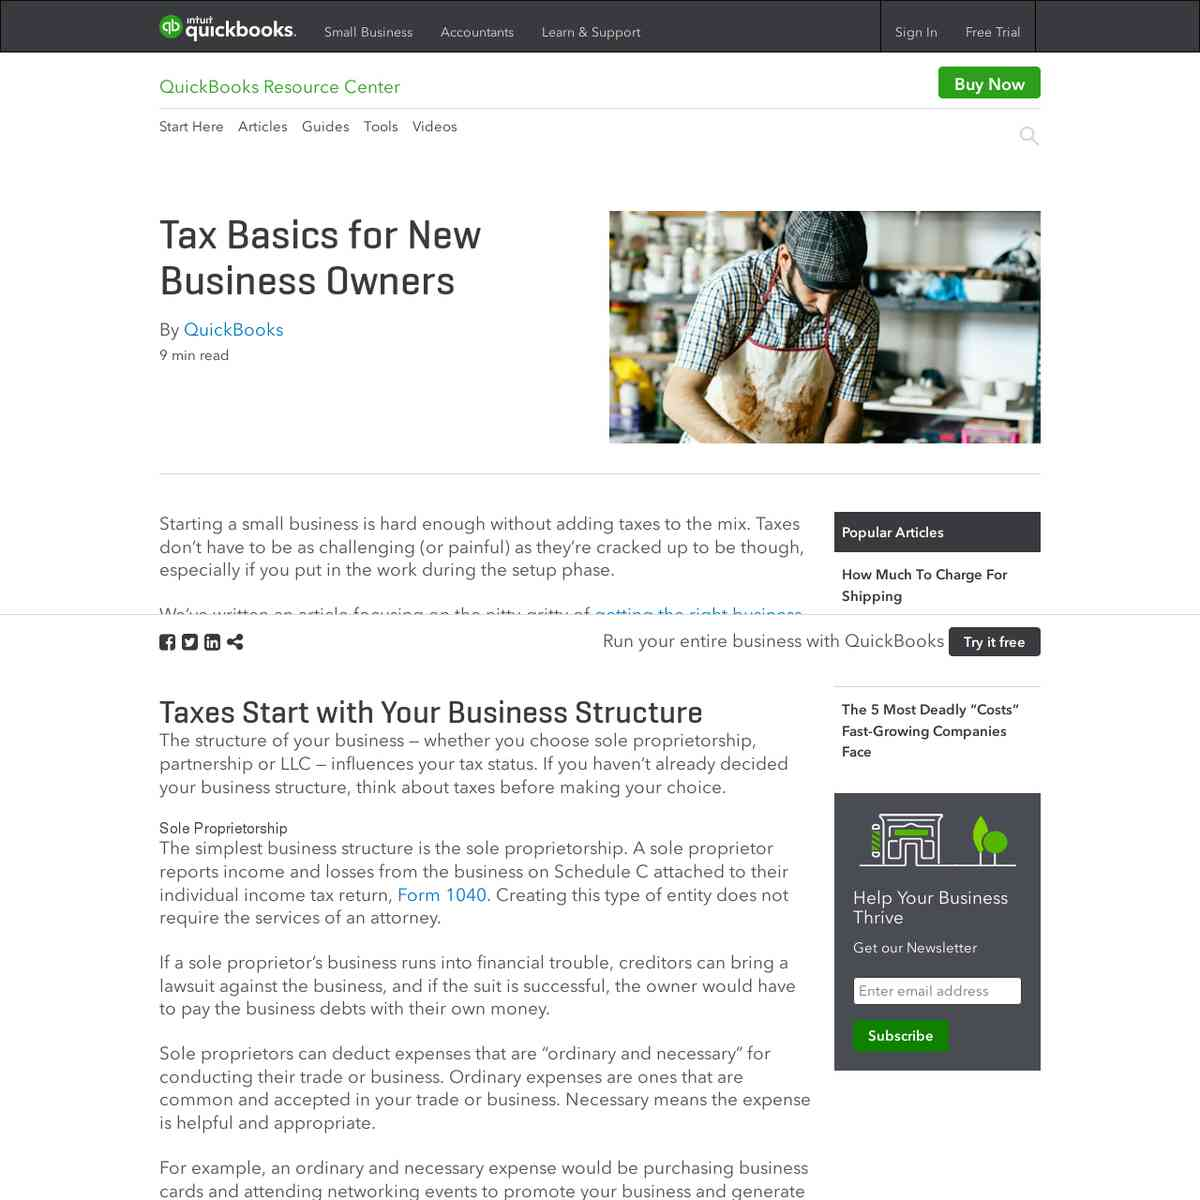 Tax Basics for New Business Owners | QuickBooks